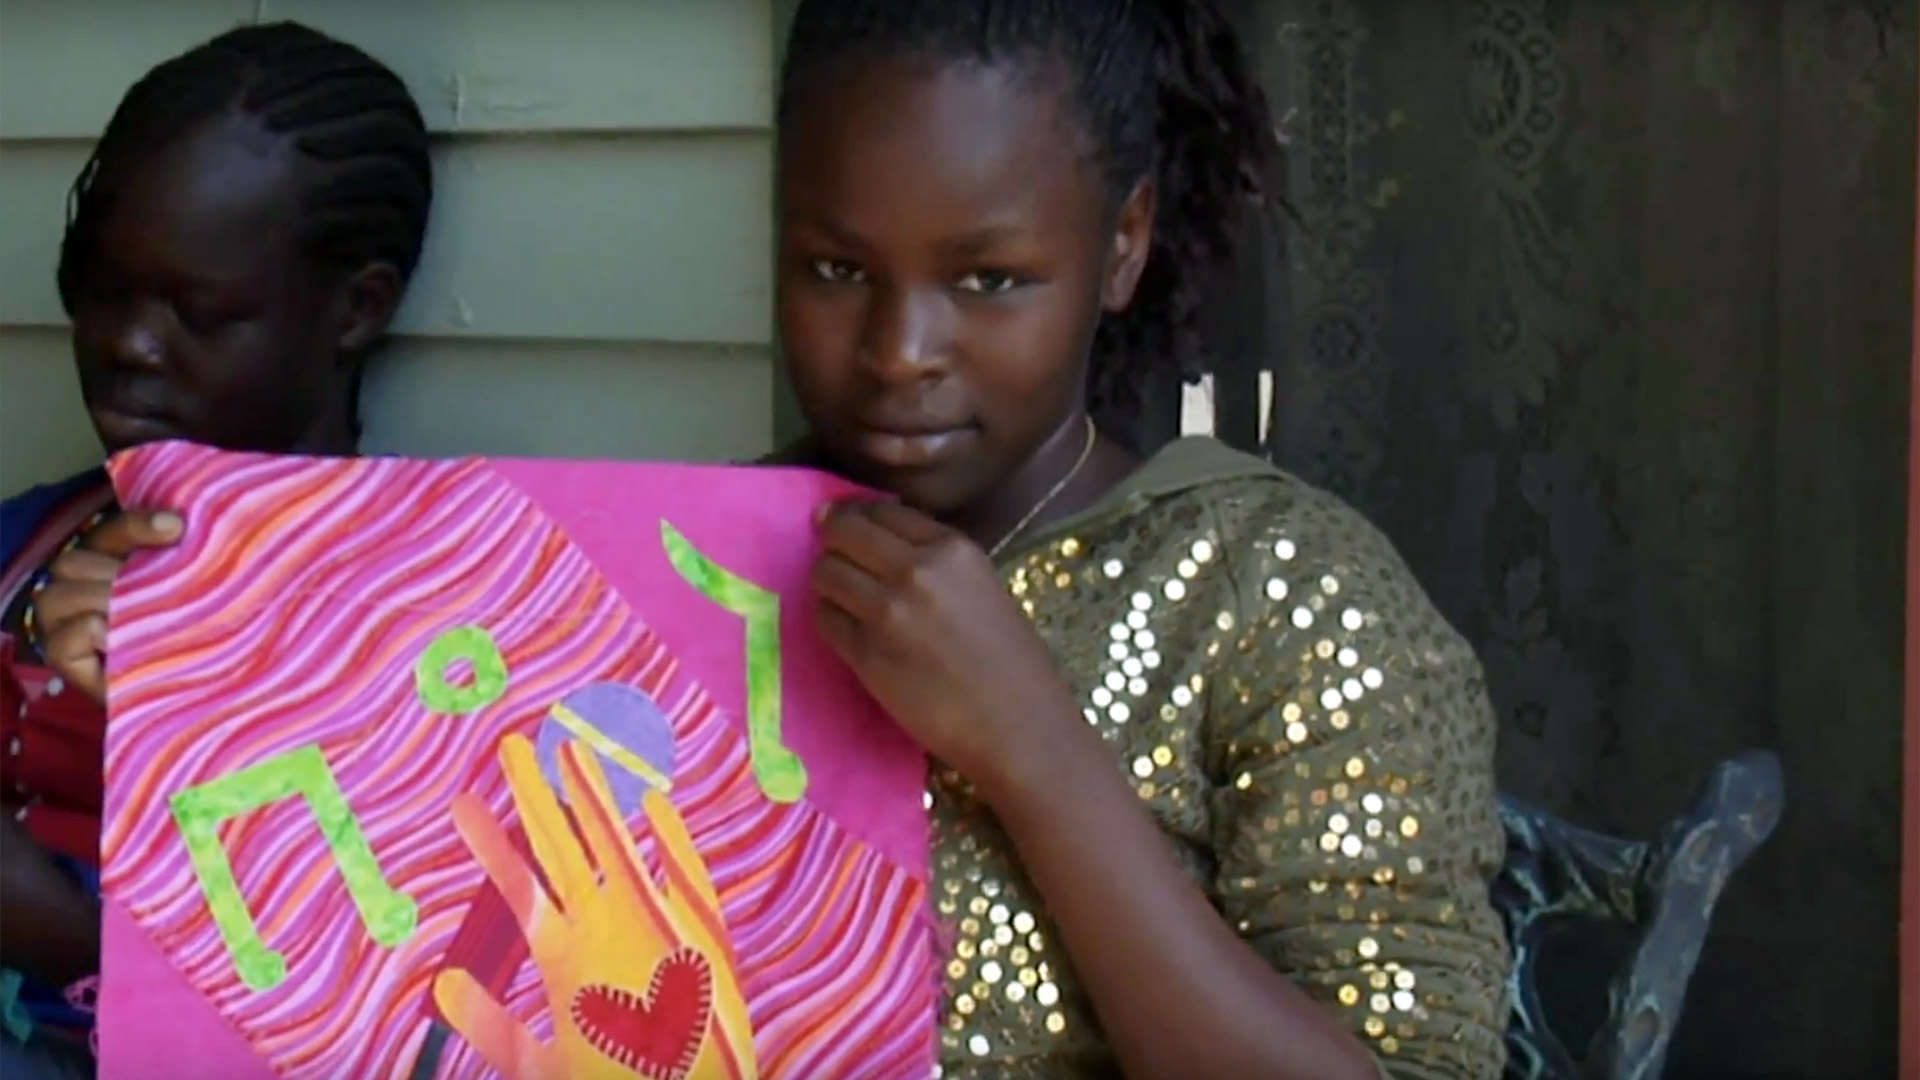 Yomaz shows off her Dreams block at the Stuhr Museum. From the documentary The Quilted Conscience